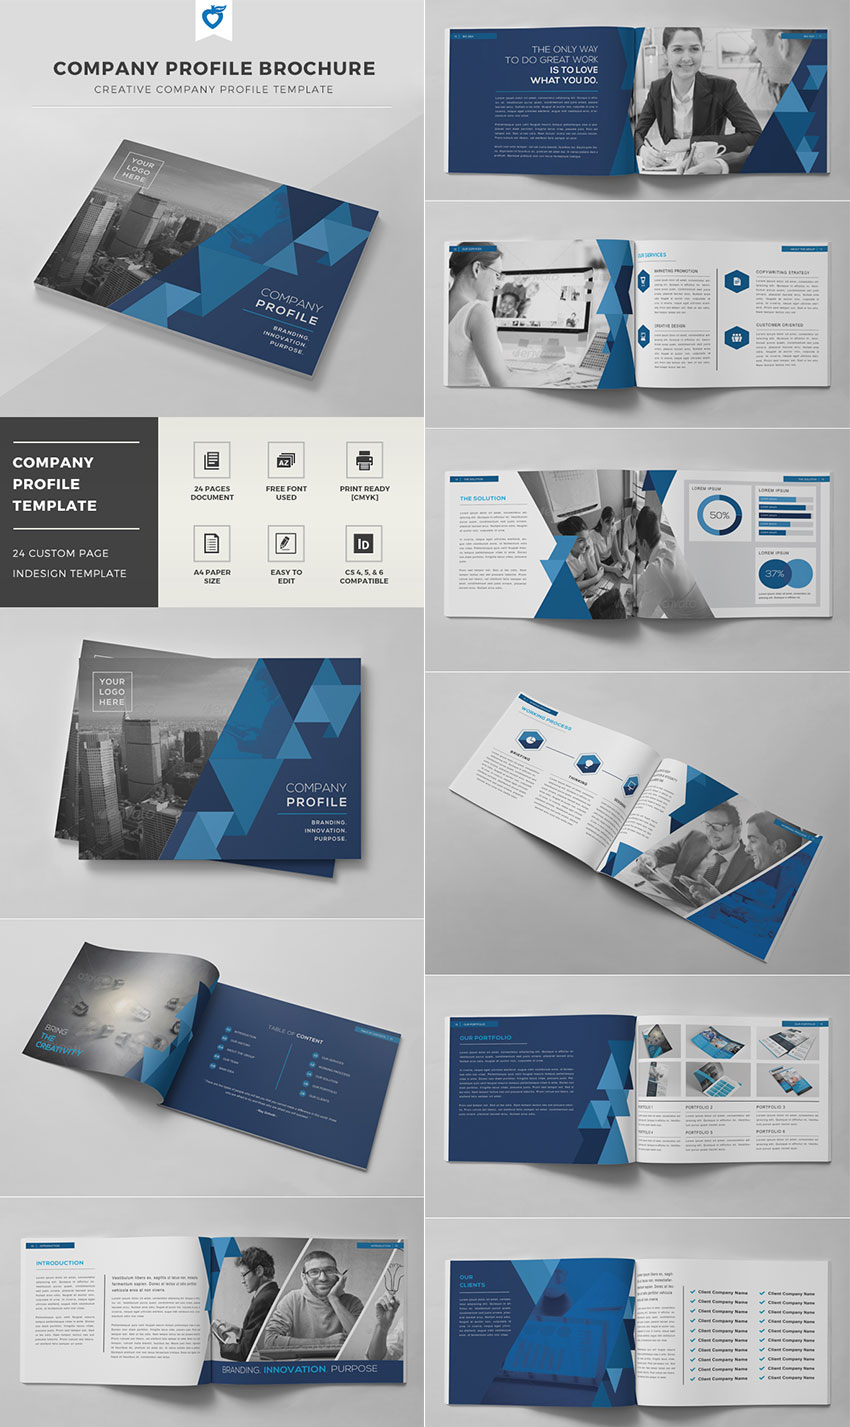 20 Best InDesign Brochure Templates For Creative Business Marketing – Templates for Company Profile